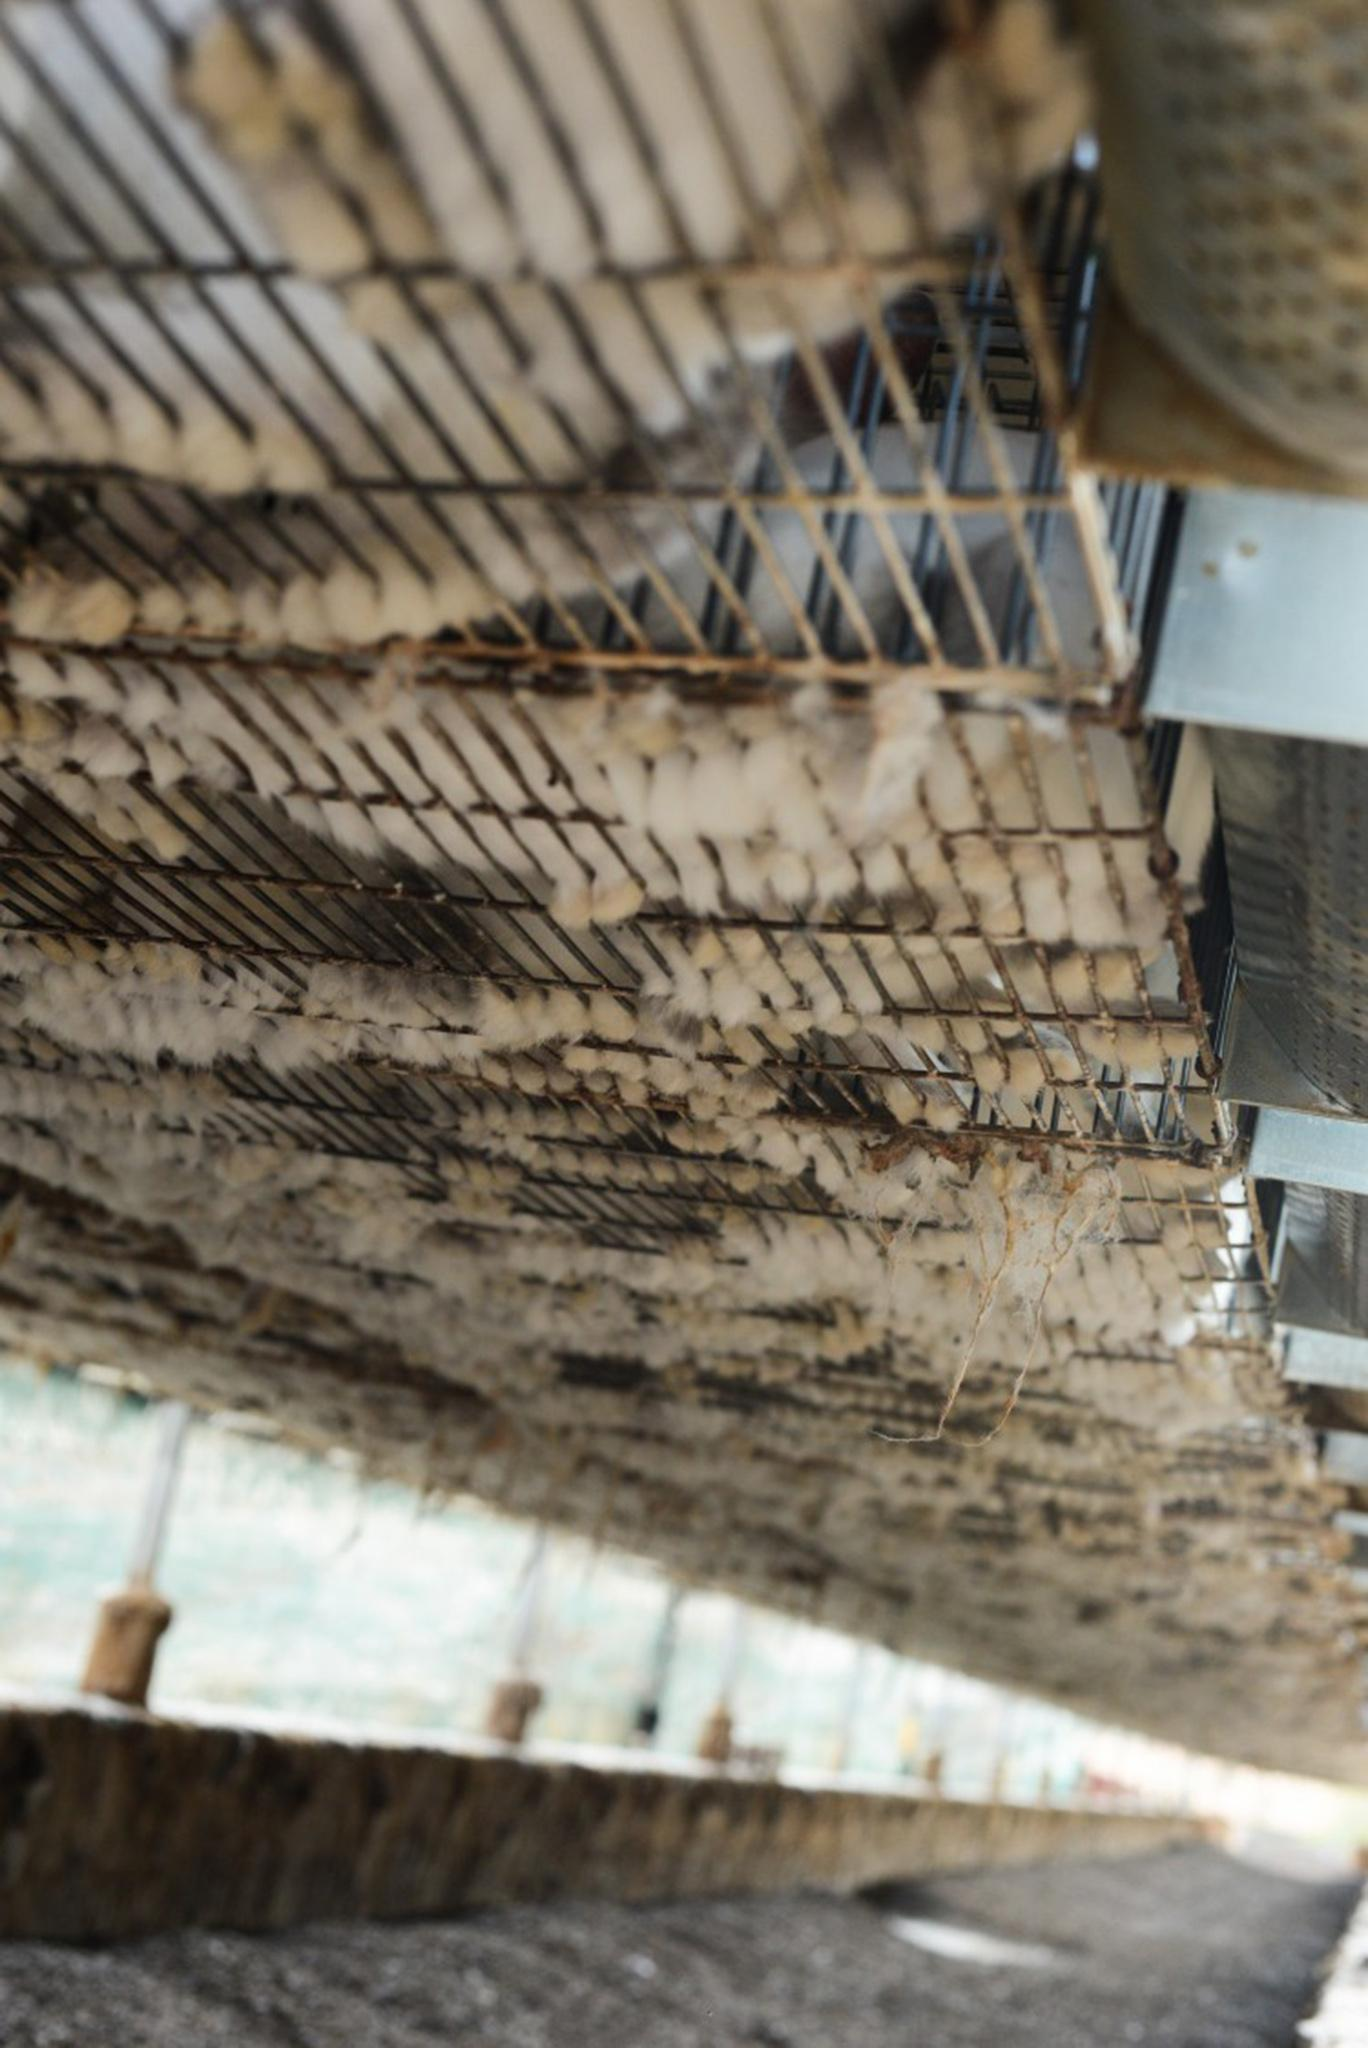 Rabbits in cages hover above excrement on breeding farm